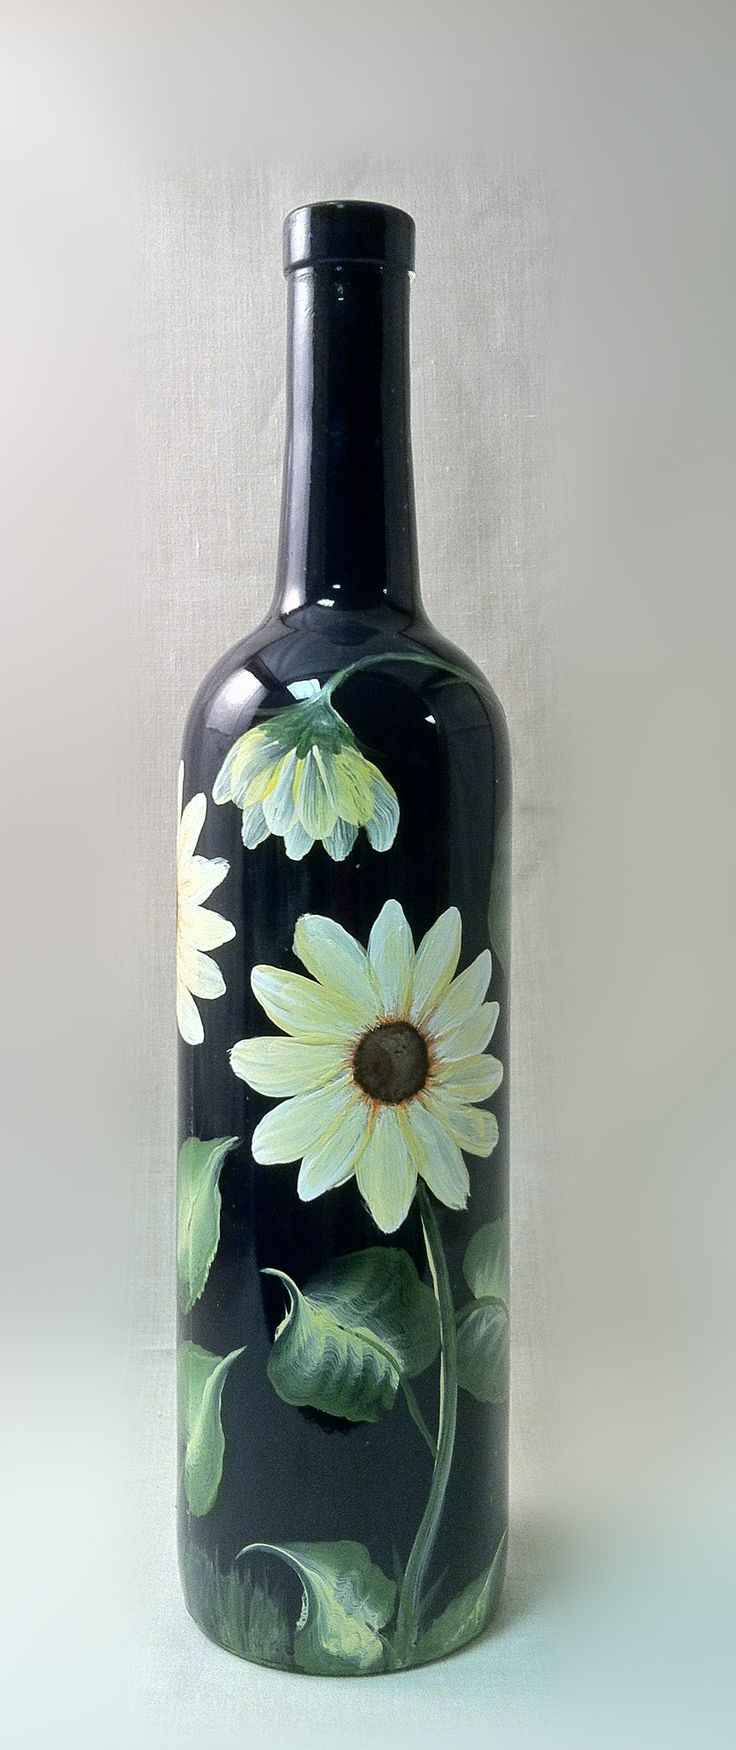 DIY Spray Painted Wine Bottles Up Close #DuVino #wine www.vinoduvino.com